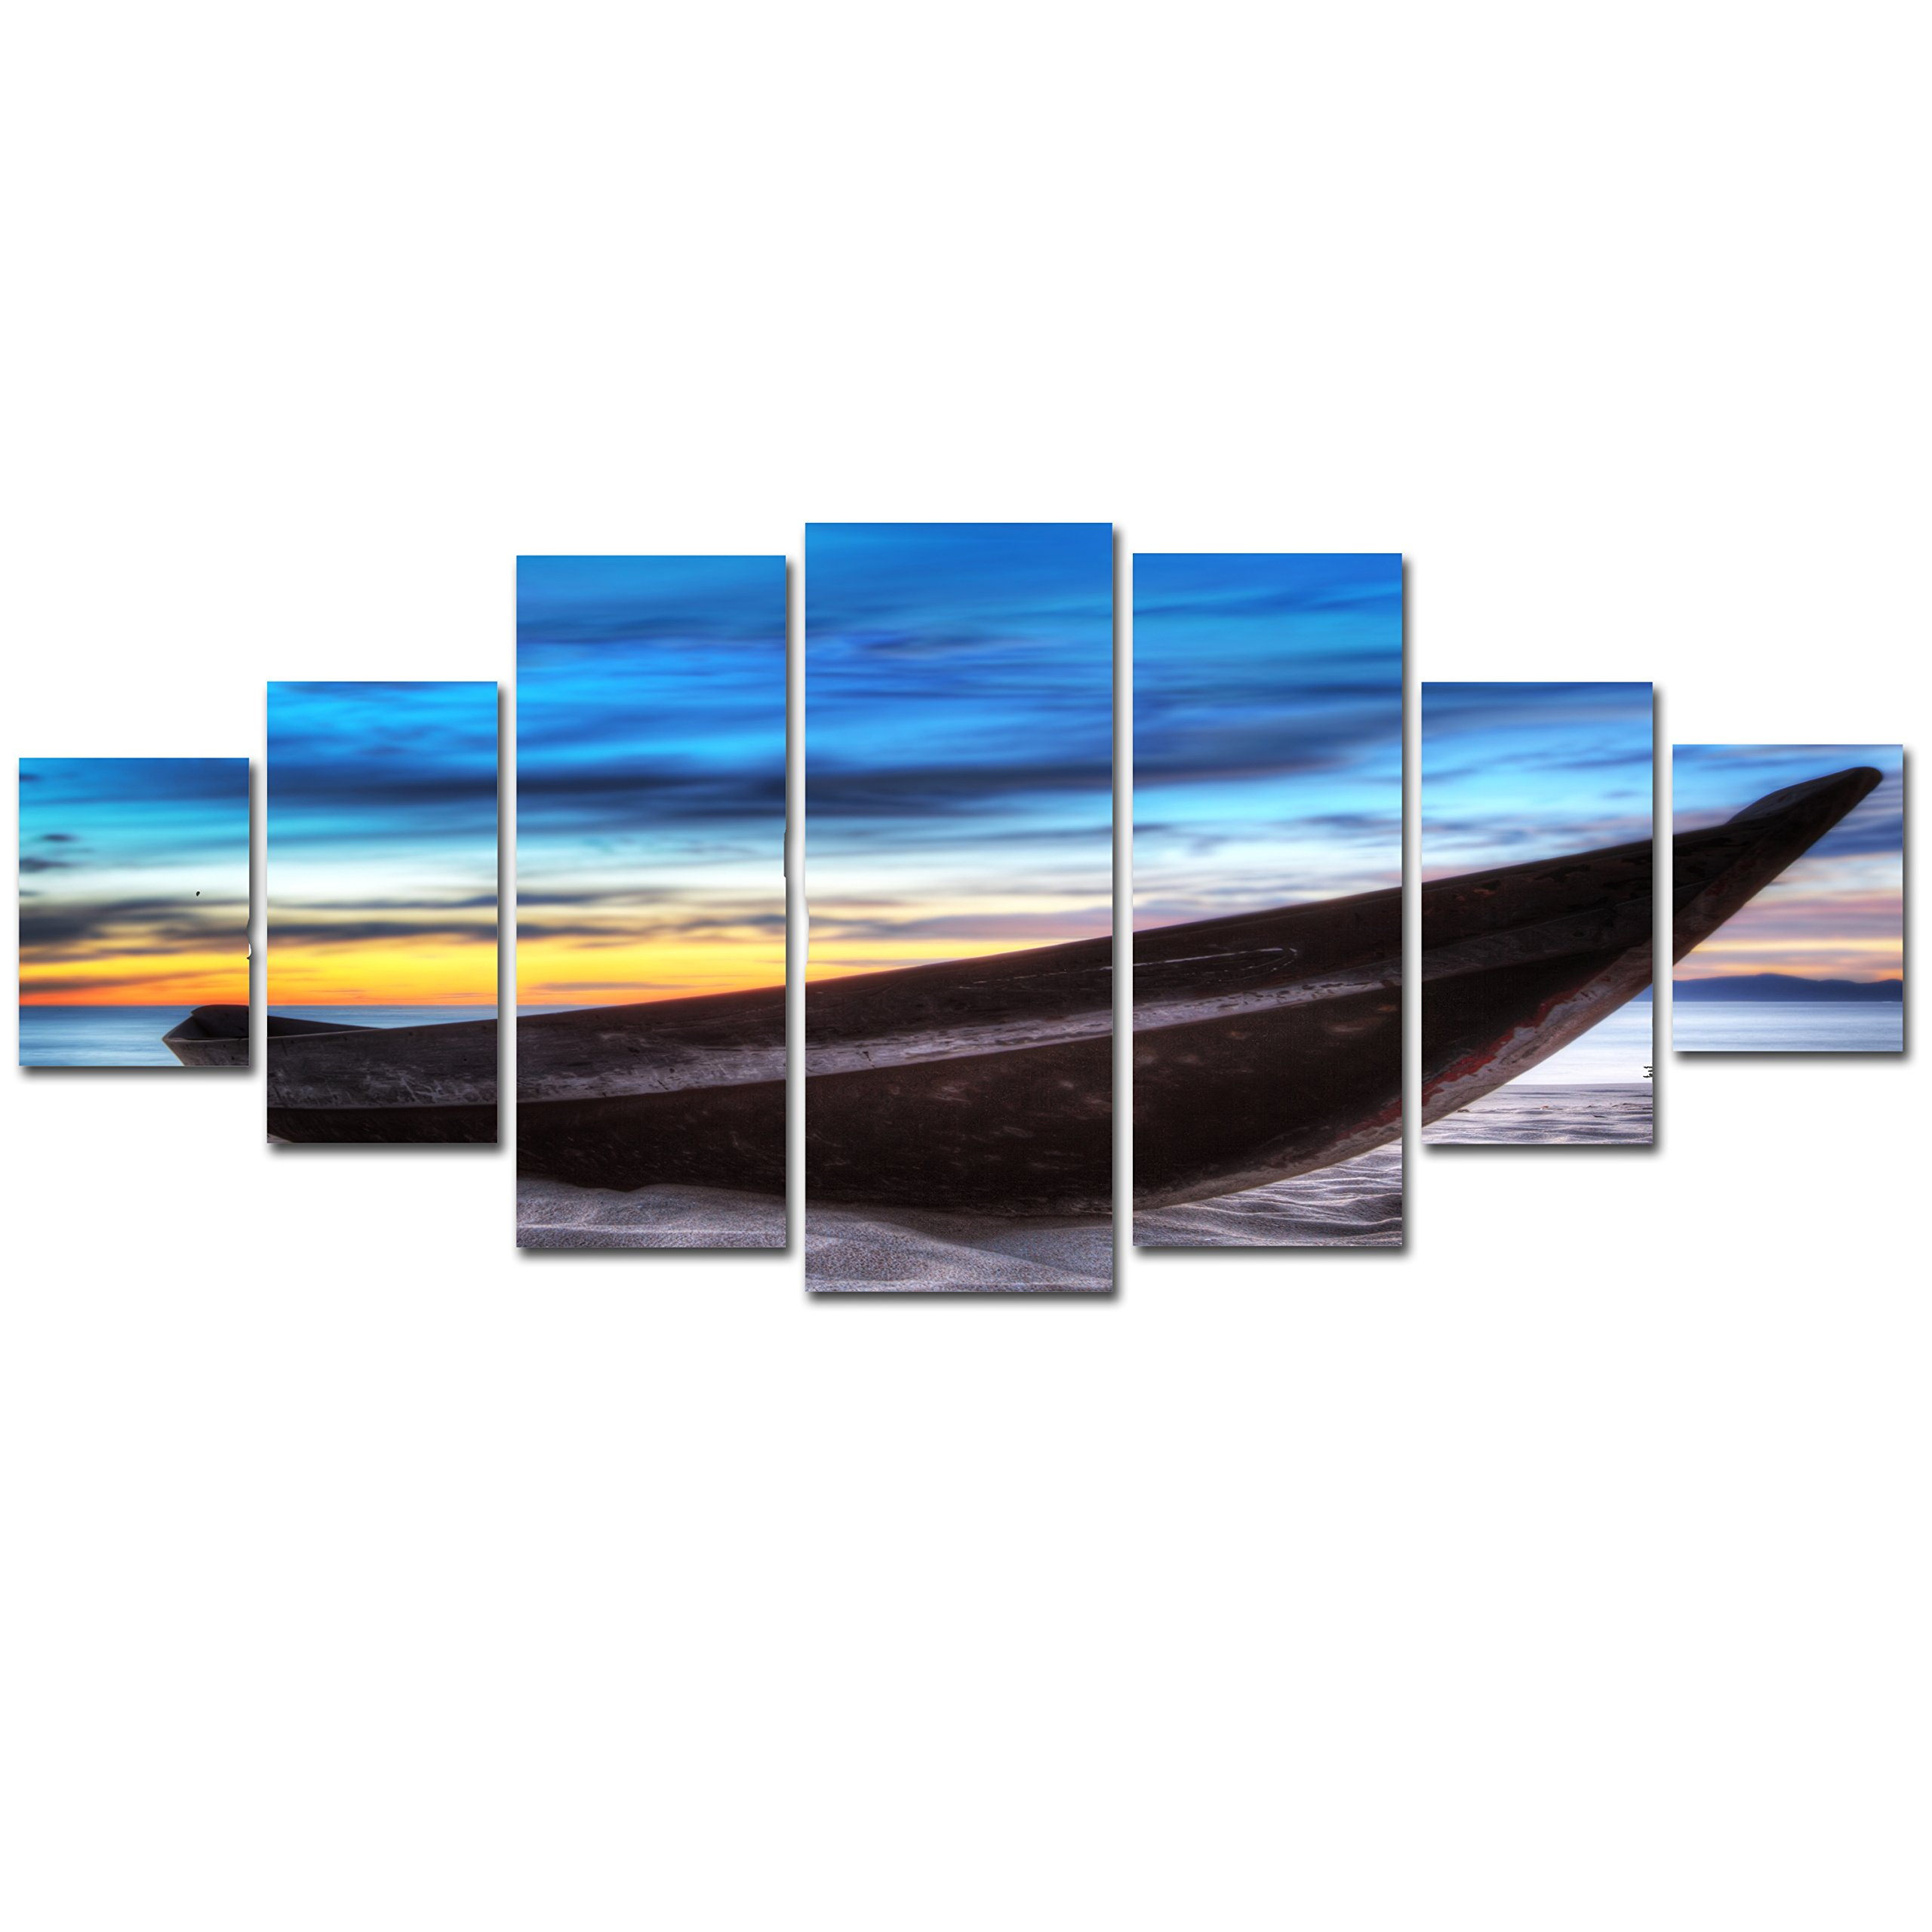 Startonight Huge Canvas Wall Art Long Boat on the Beach, Nature Landscapes Winter USA Large Home Decor, Dual View Surprise Artwork Modern Framed Wall Art Set of 7 Panels Total 39.37 x 94.49 inch by Startonight